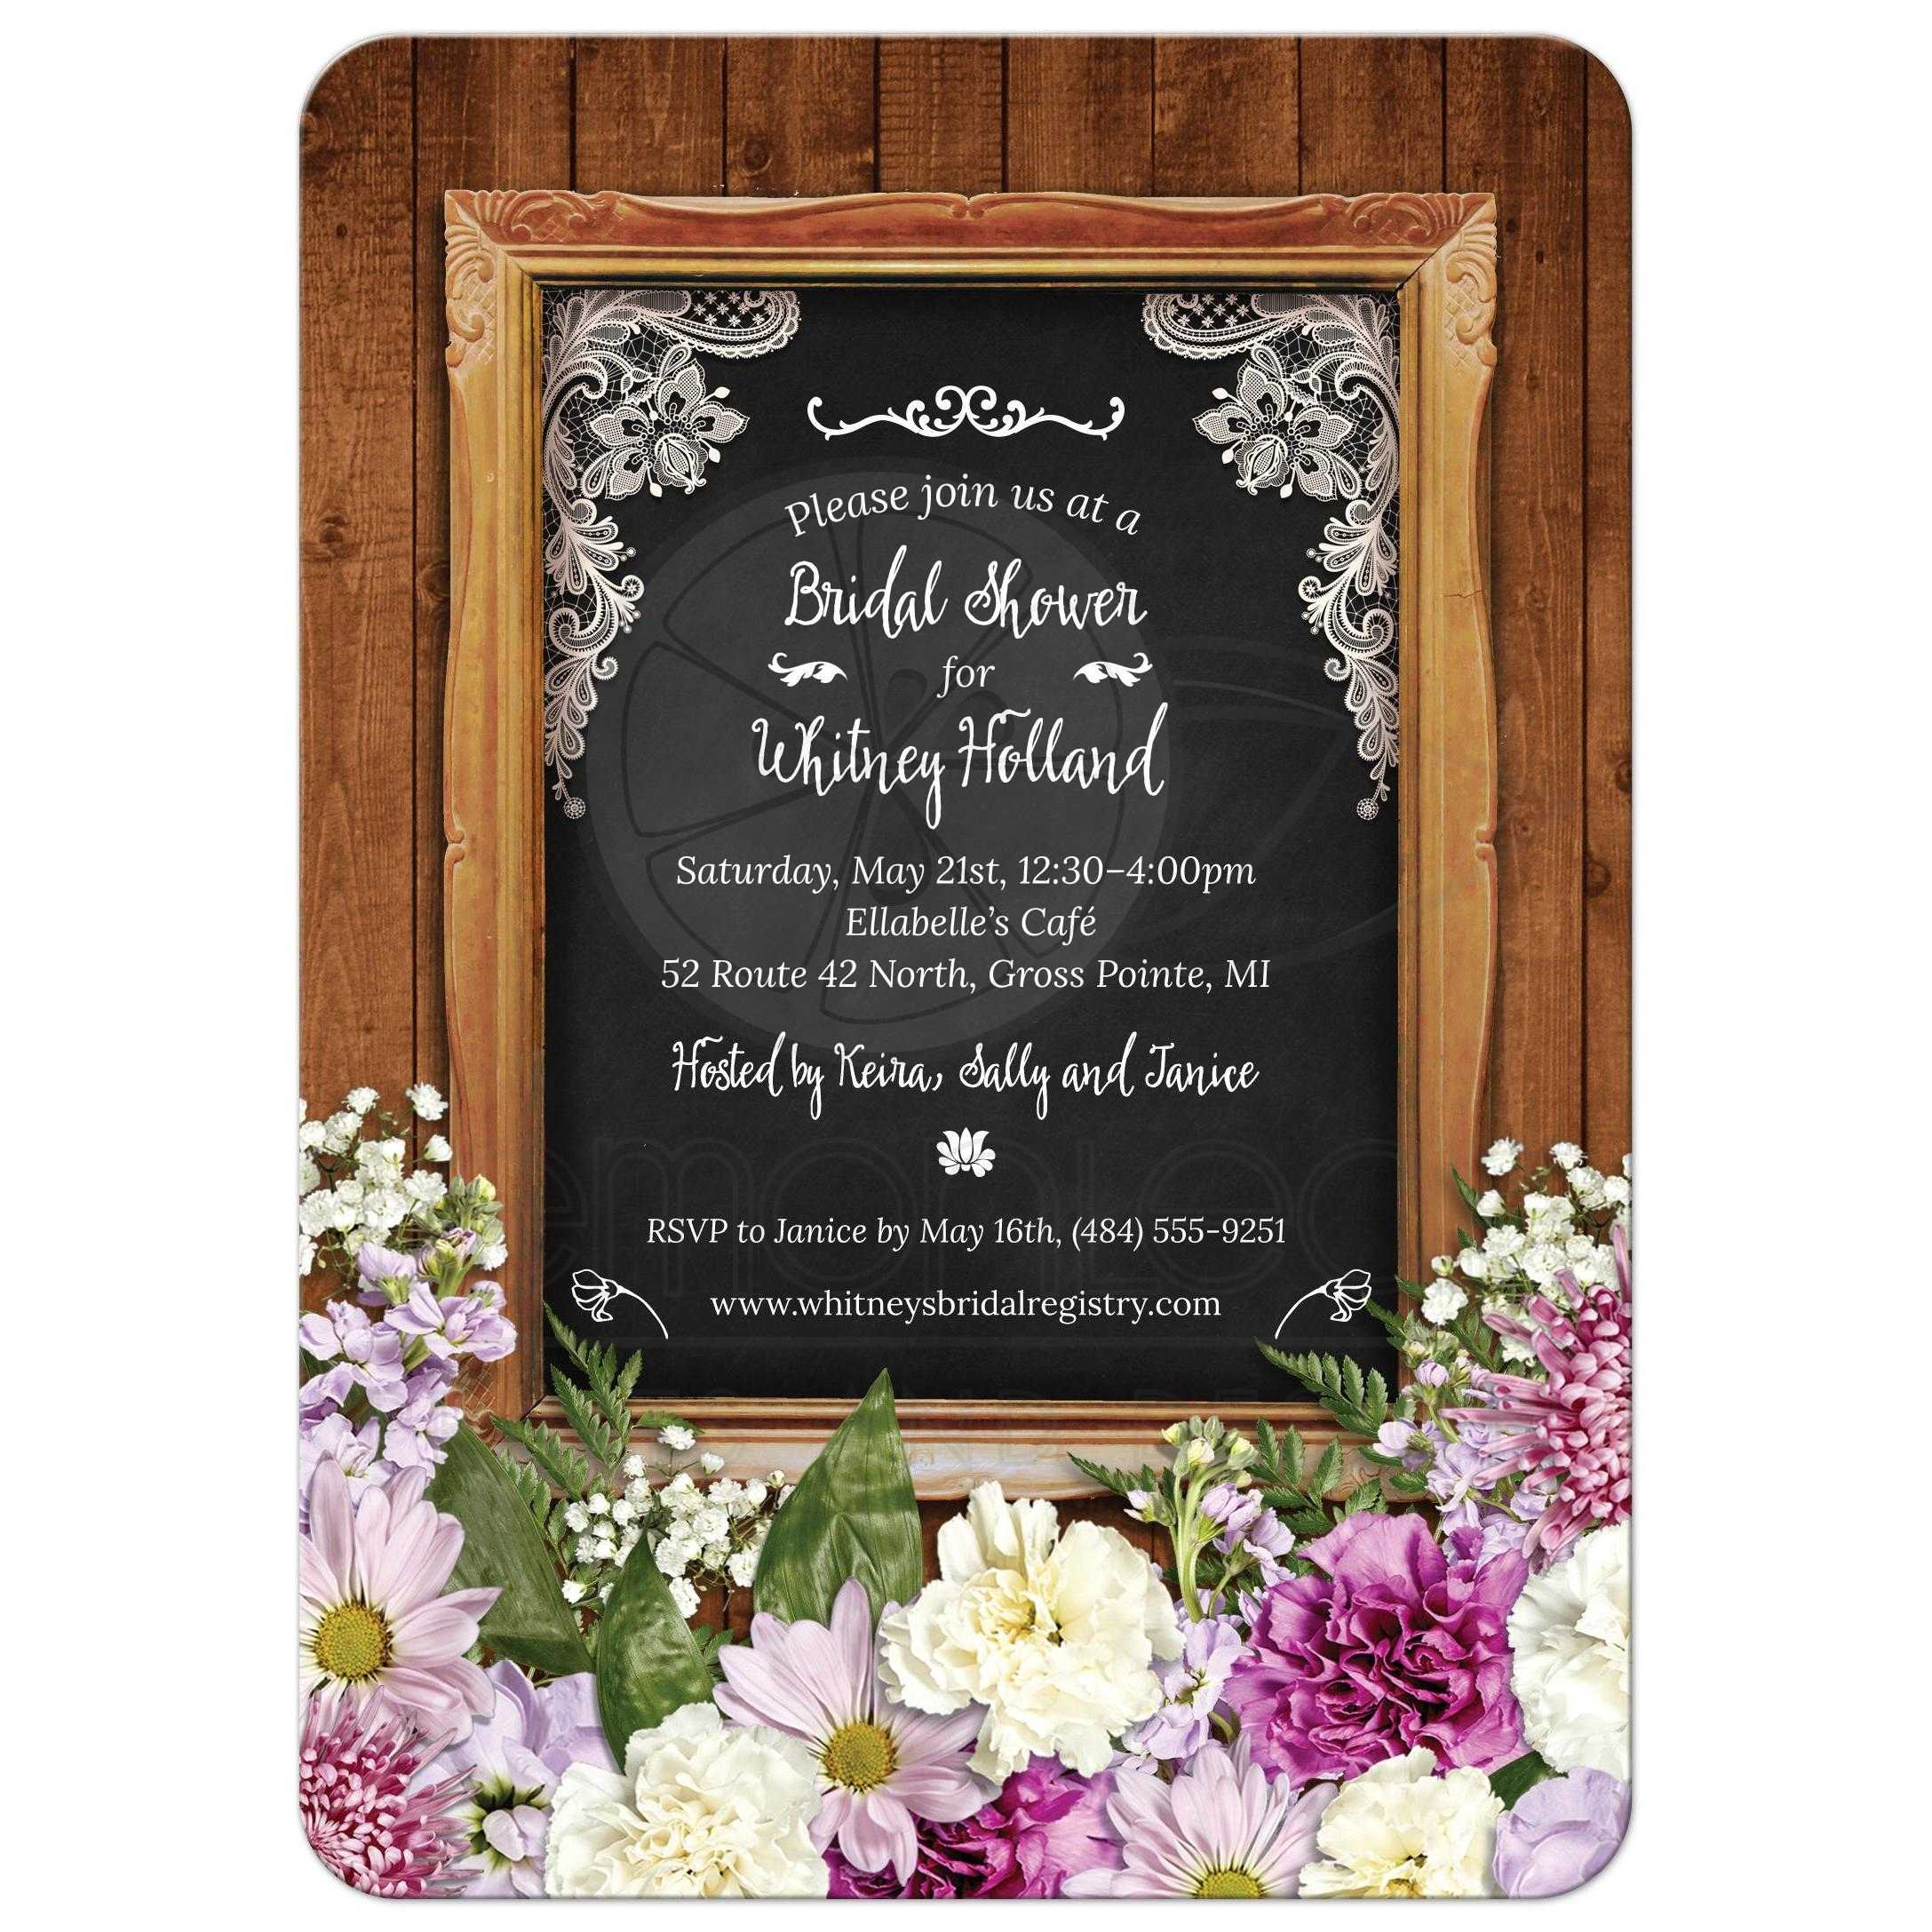 Sending Wedding Invitations Post Office: Rustic Spring Chalkboard Picture Frame Floral Bridal